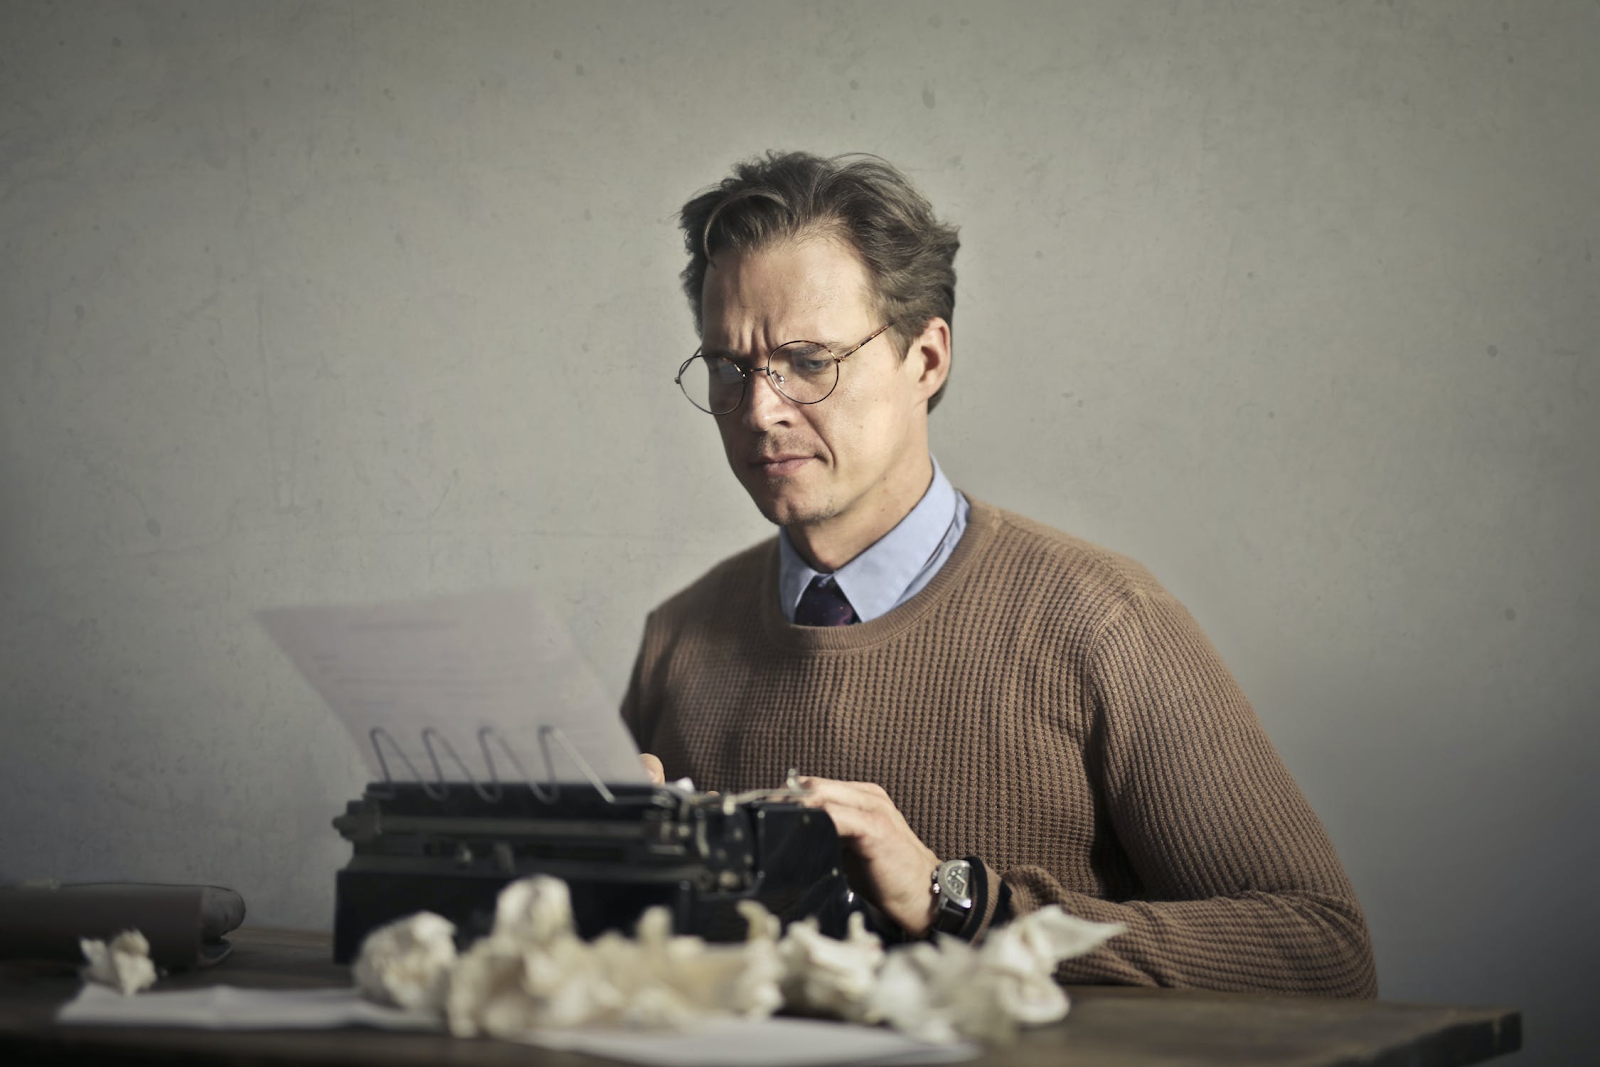 Fiction writer writes away to perfect his craft.